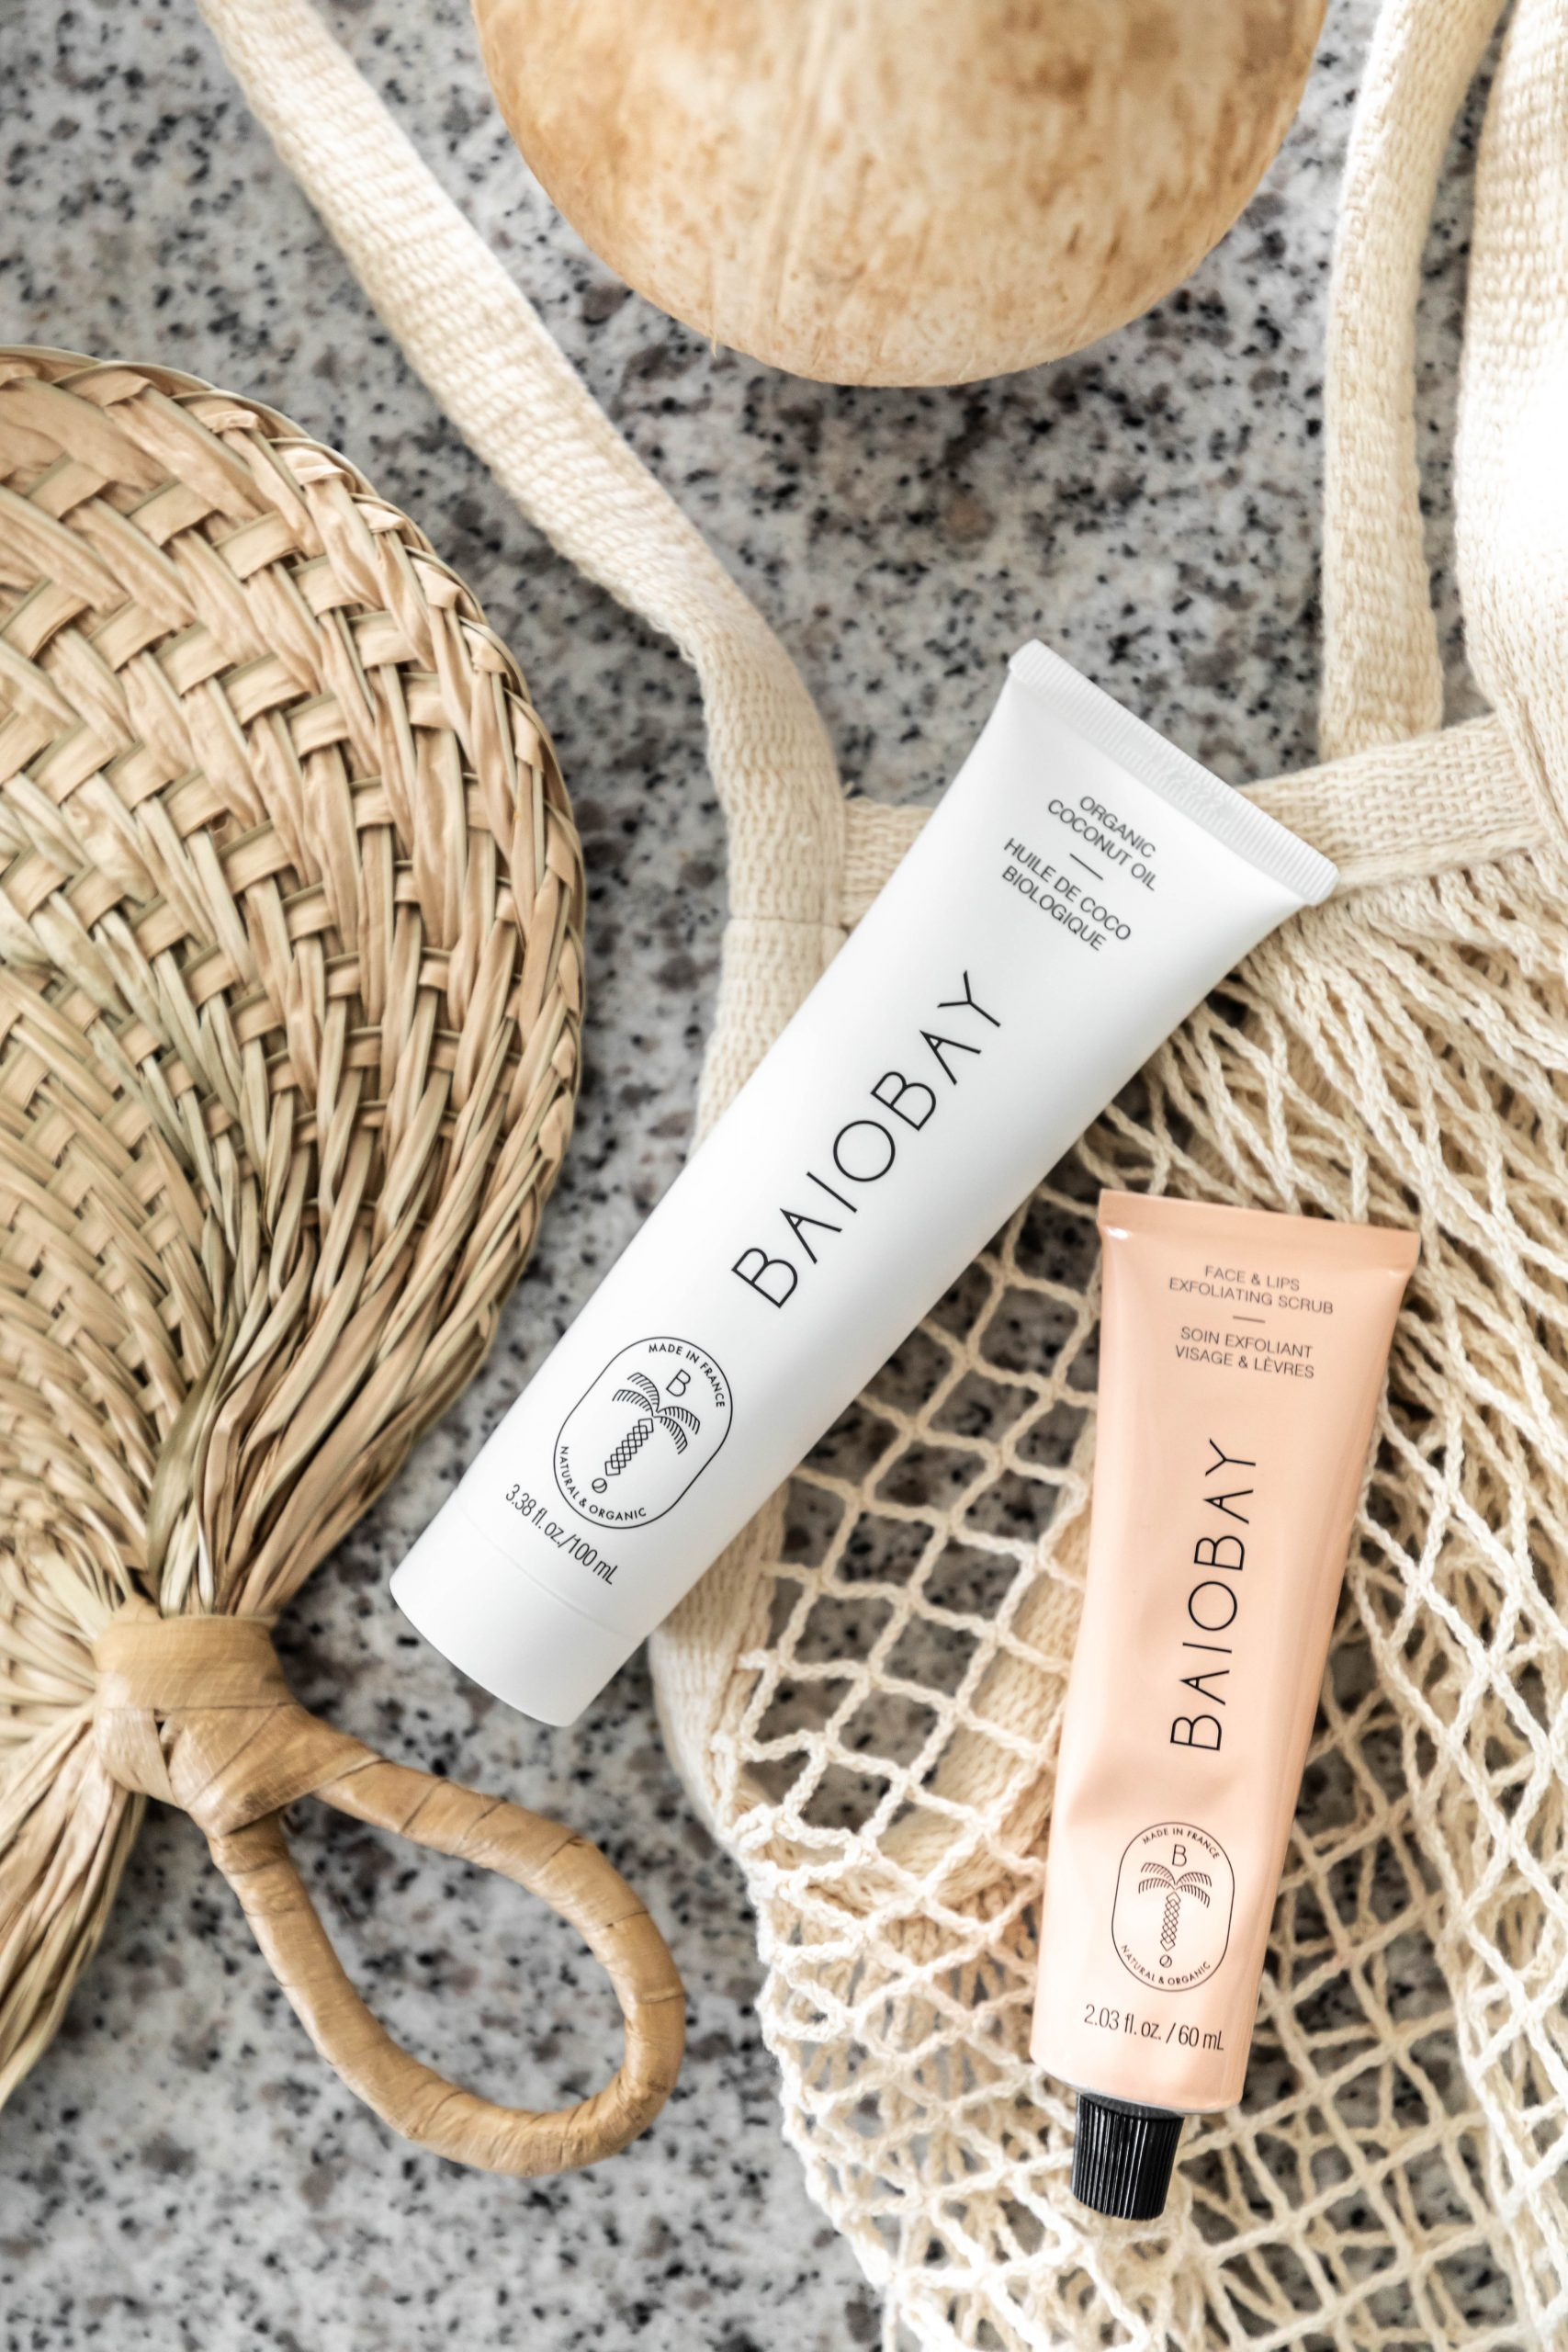 My Go-To Summer Moisturizer from From Organic, Cruelty-Free from Baoibay Photographed and Written by Annie Fairfax